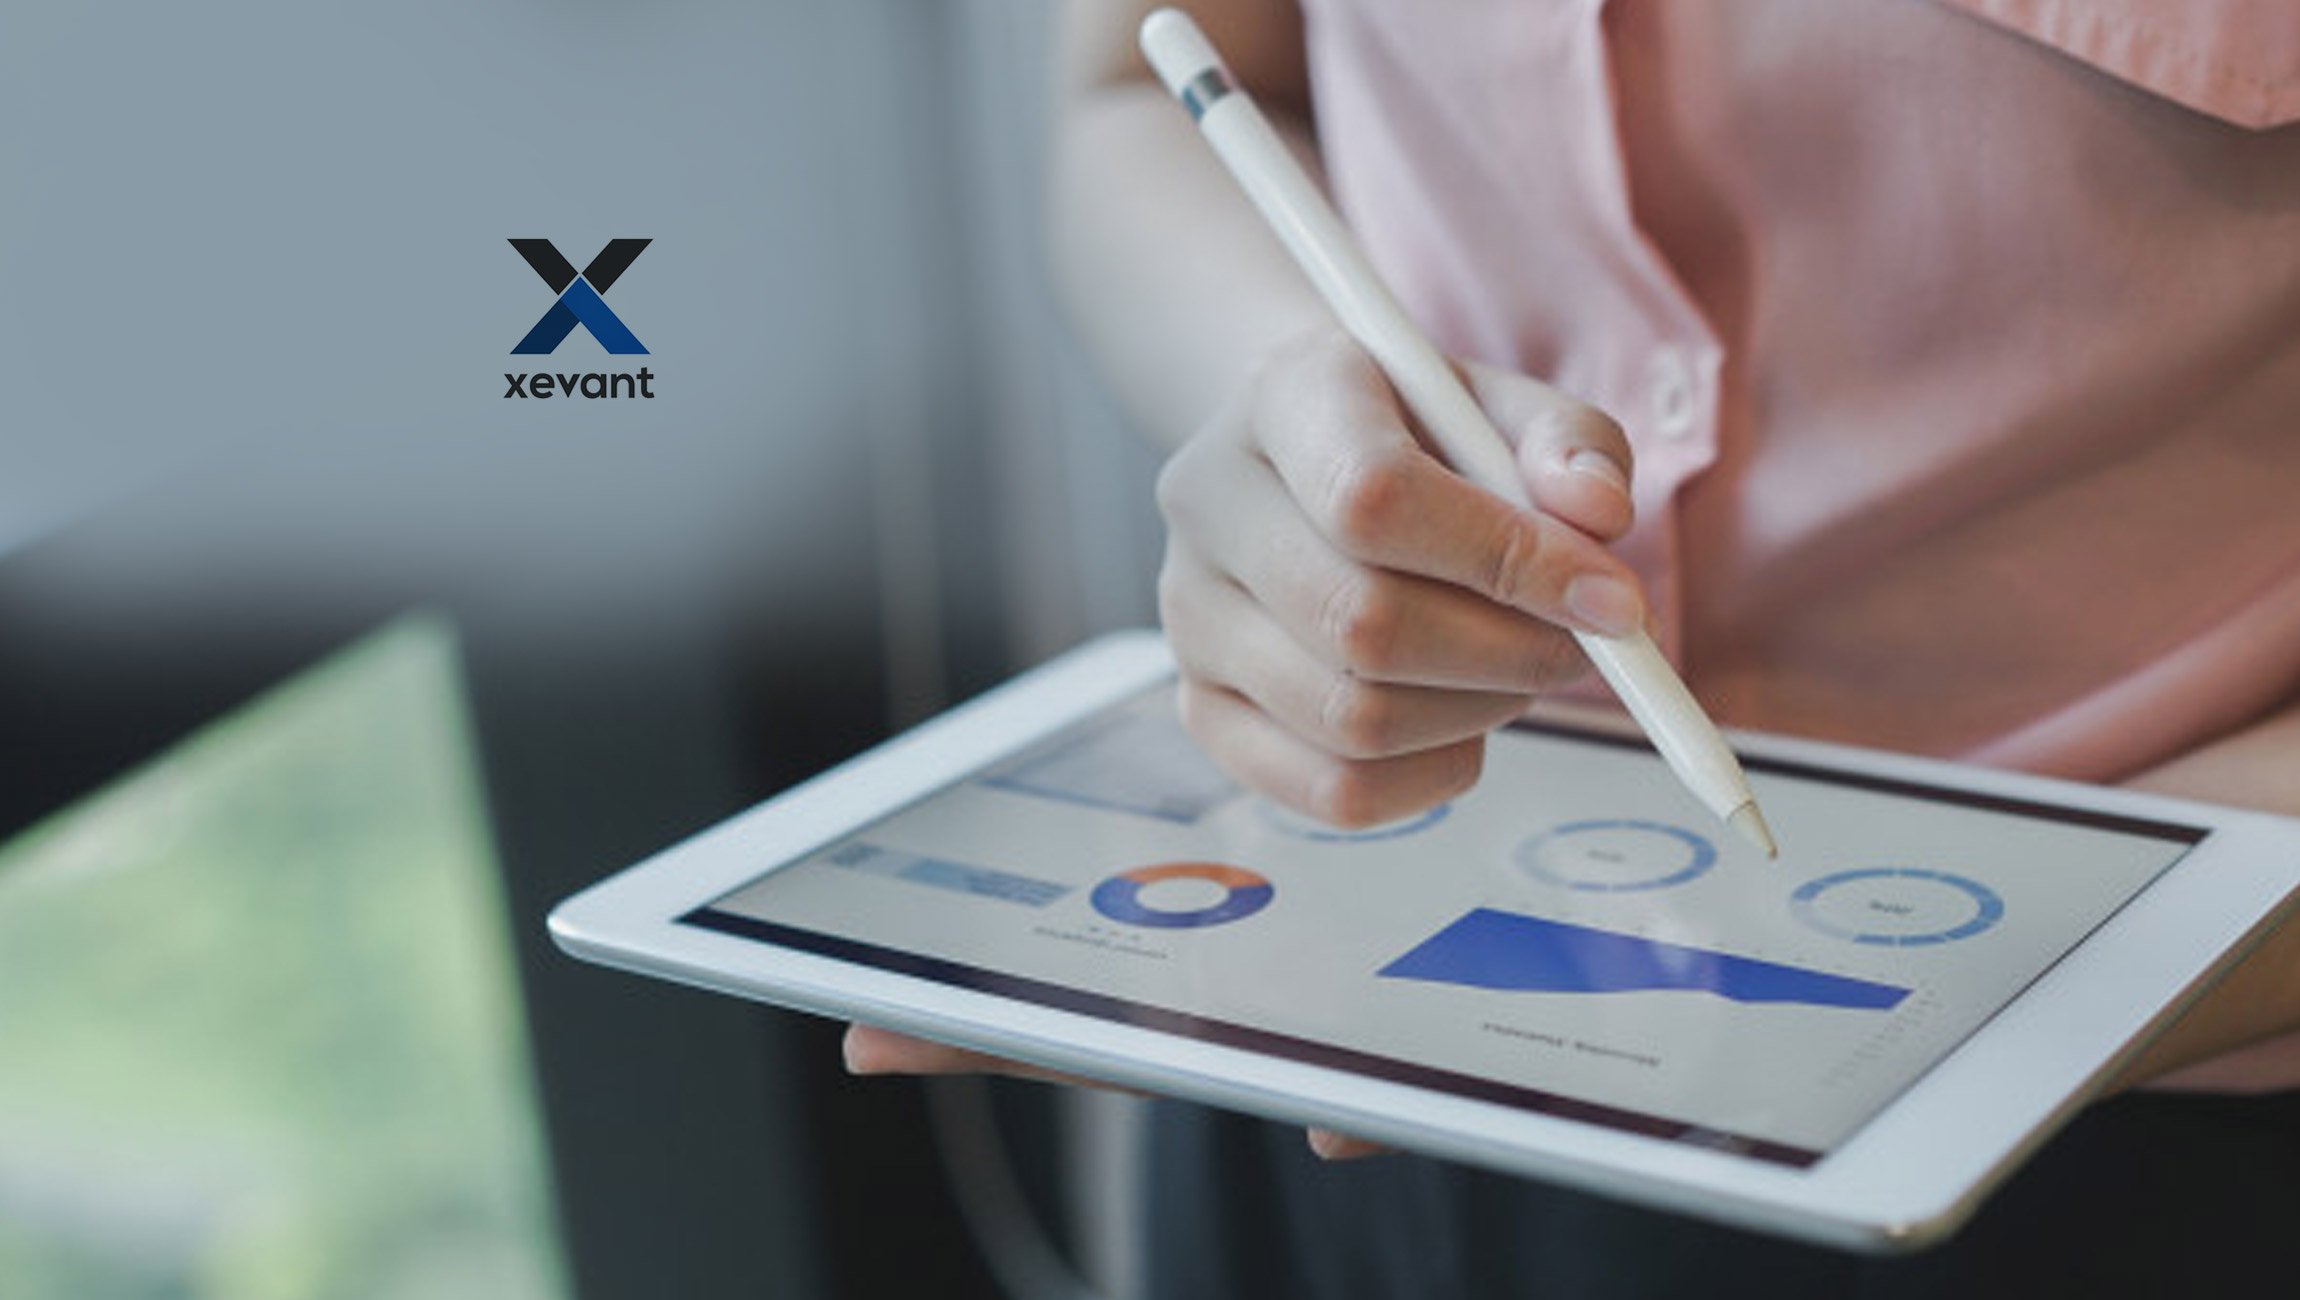 Xevant Announces Key Additions to Its Executive Leadership Team